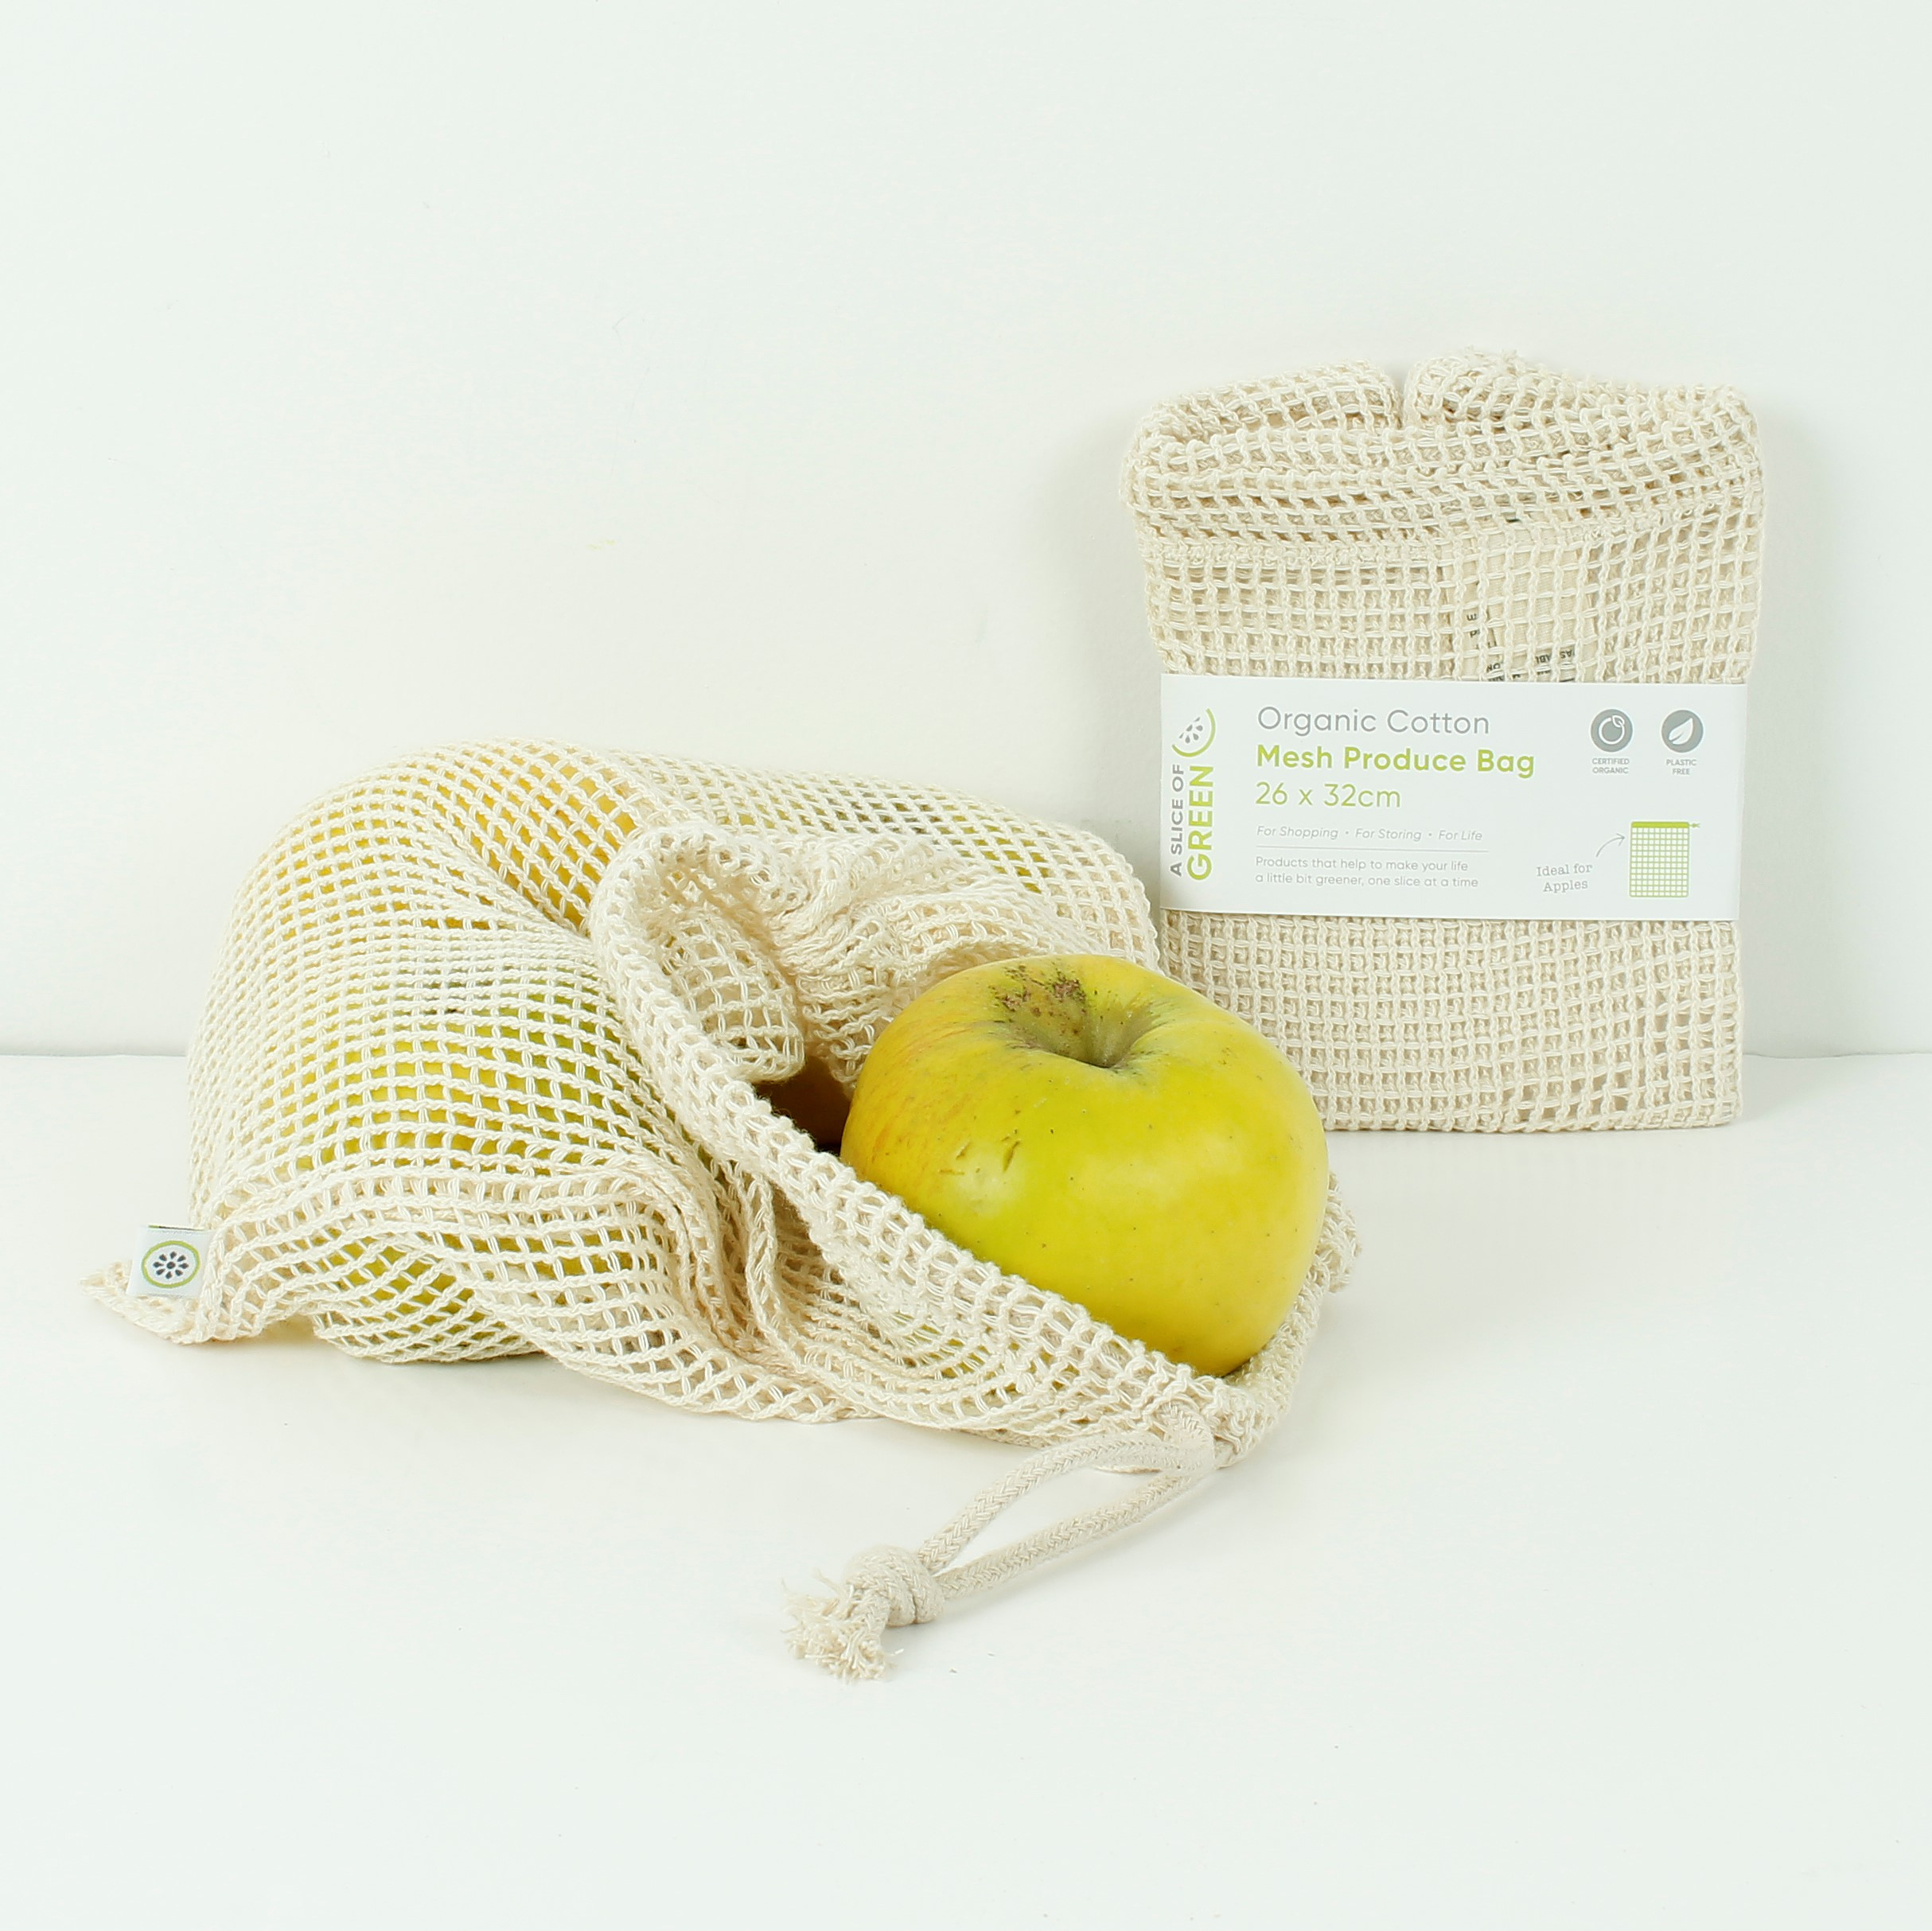 Mesh Cotton Produce Bags (Organic)